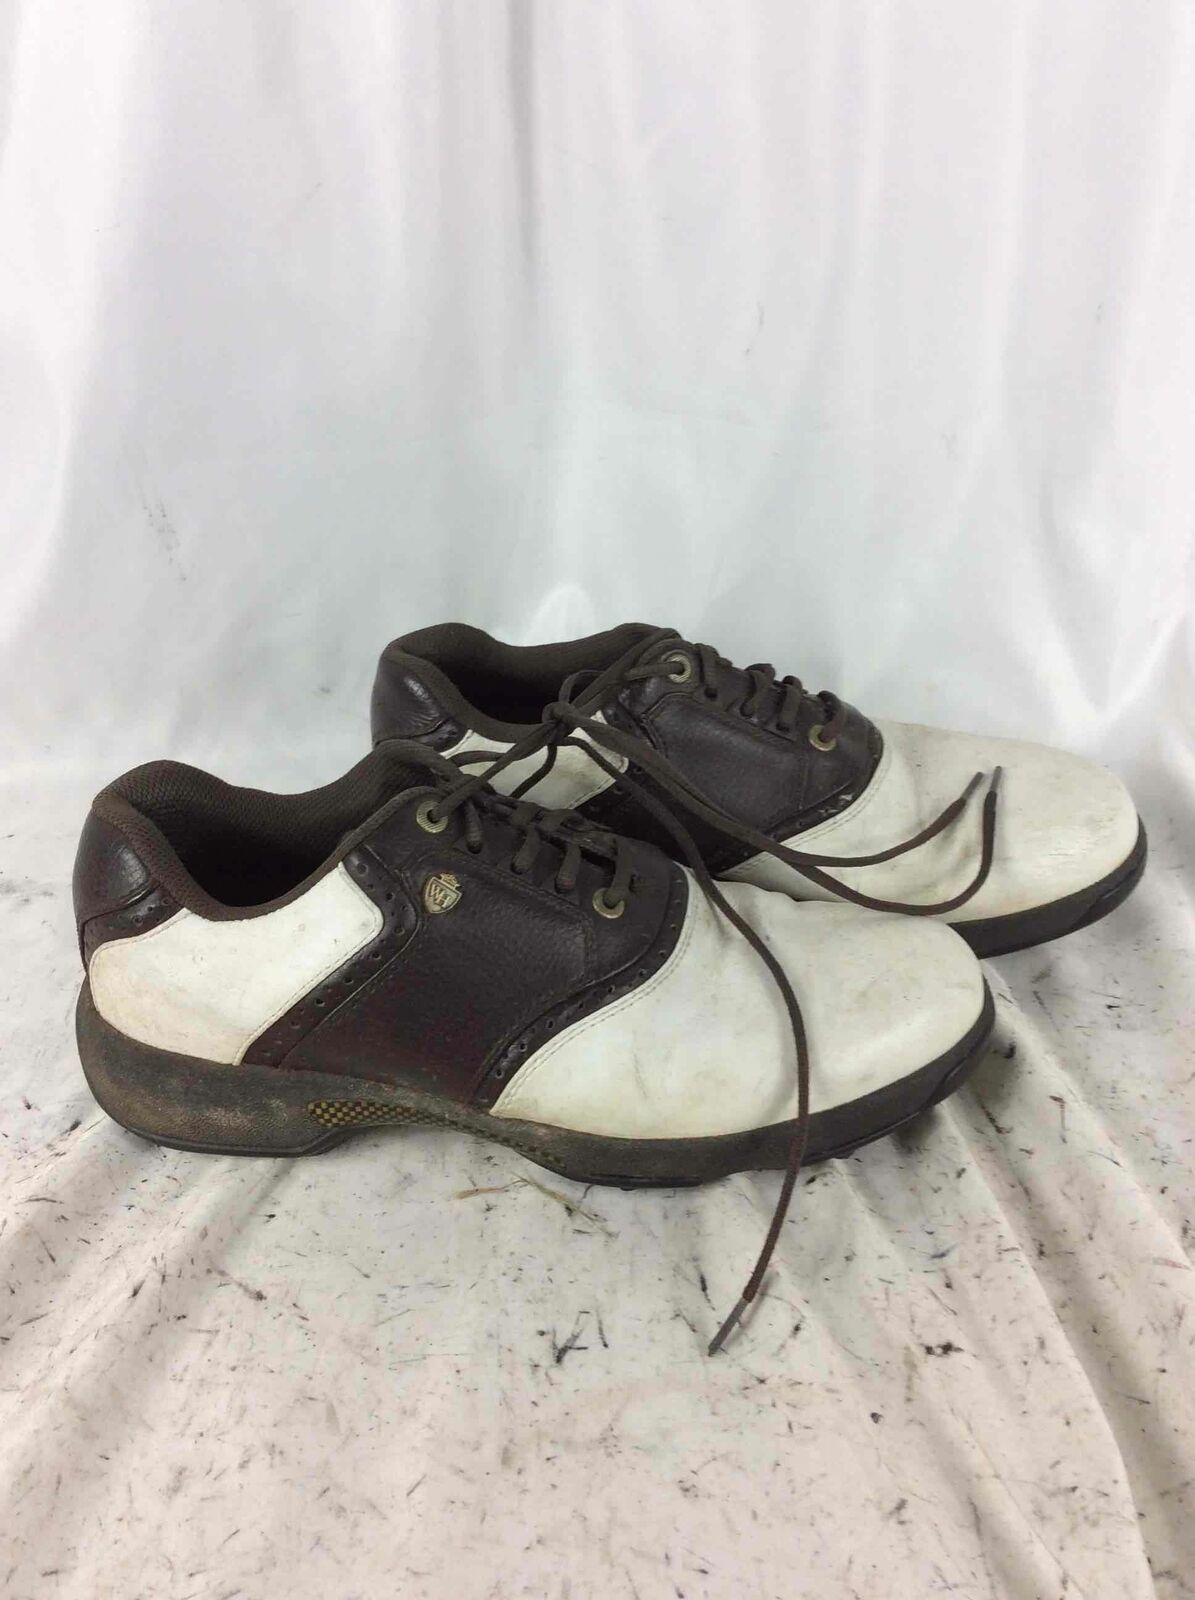 Primary image for Walter Hagen 8.0 Size Golf Shoes